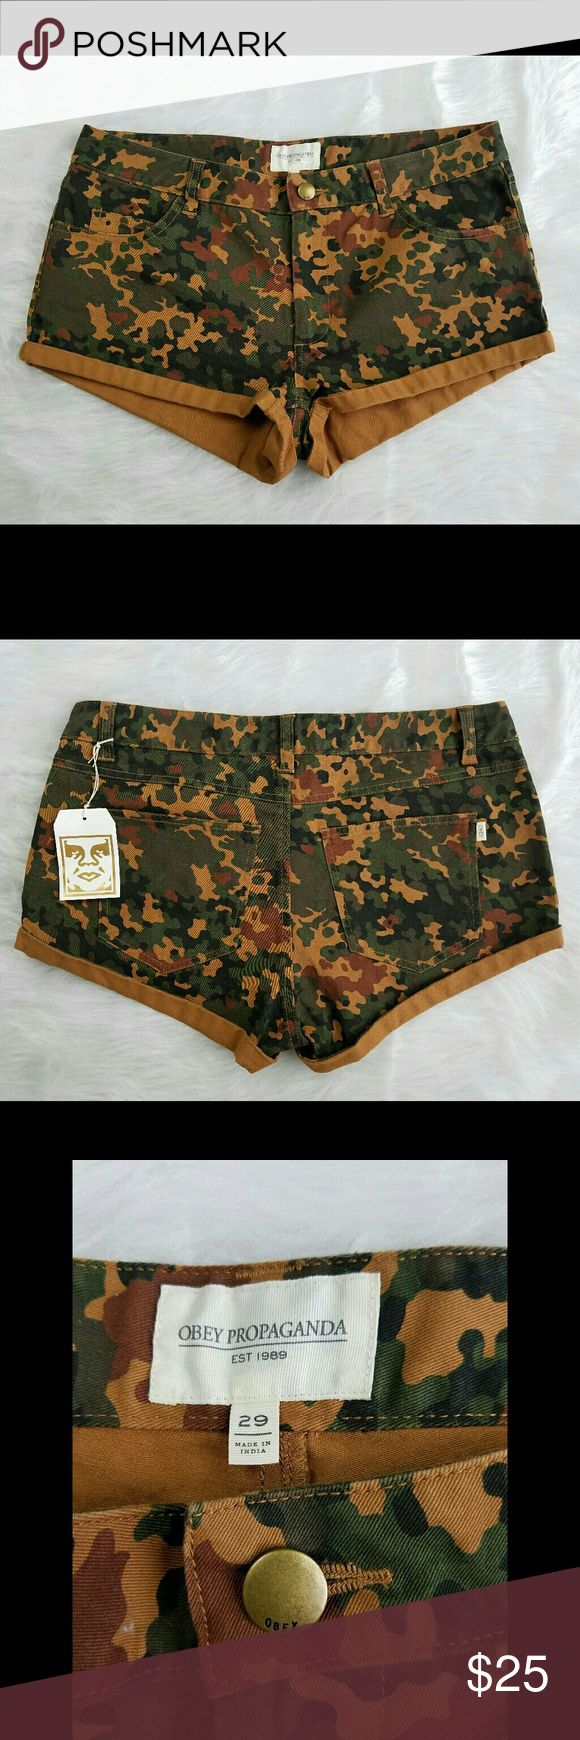 Obey Propaganda Camouflage Shorts NWT no flaws or stains. Reasonable offers accepted, bundles discounted. lowballers will immediately be declined. No trades. I can ship same or next day. Obey Shorts Jean Shorts